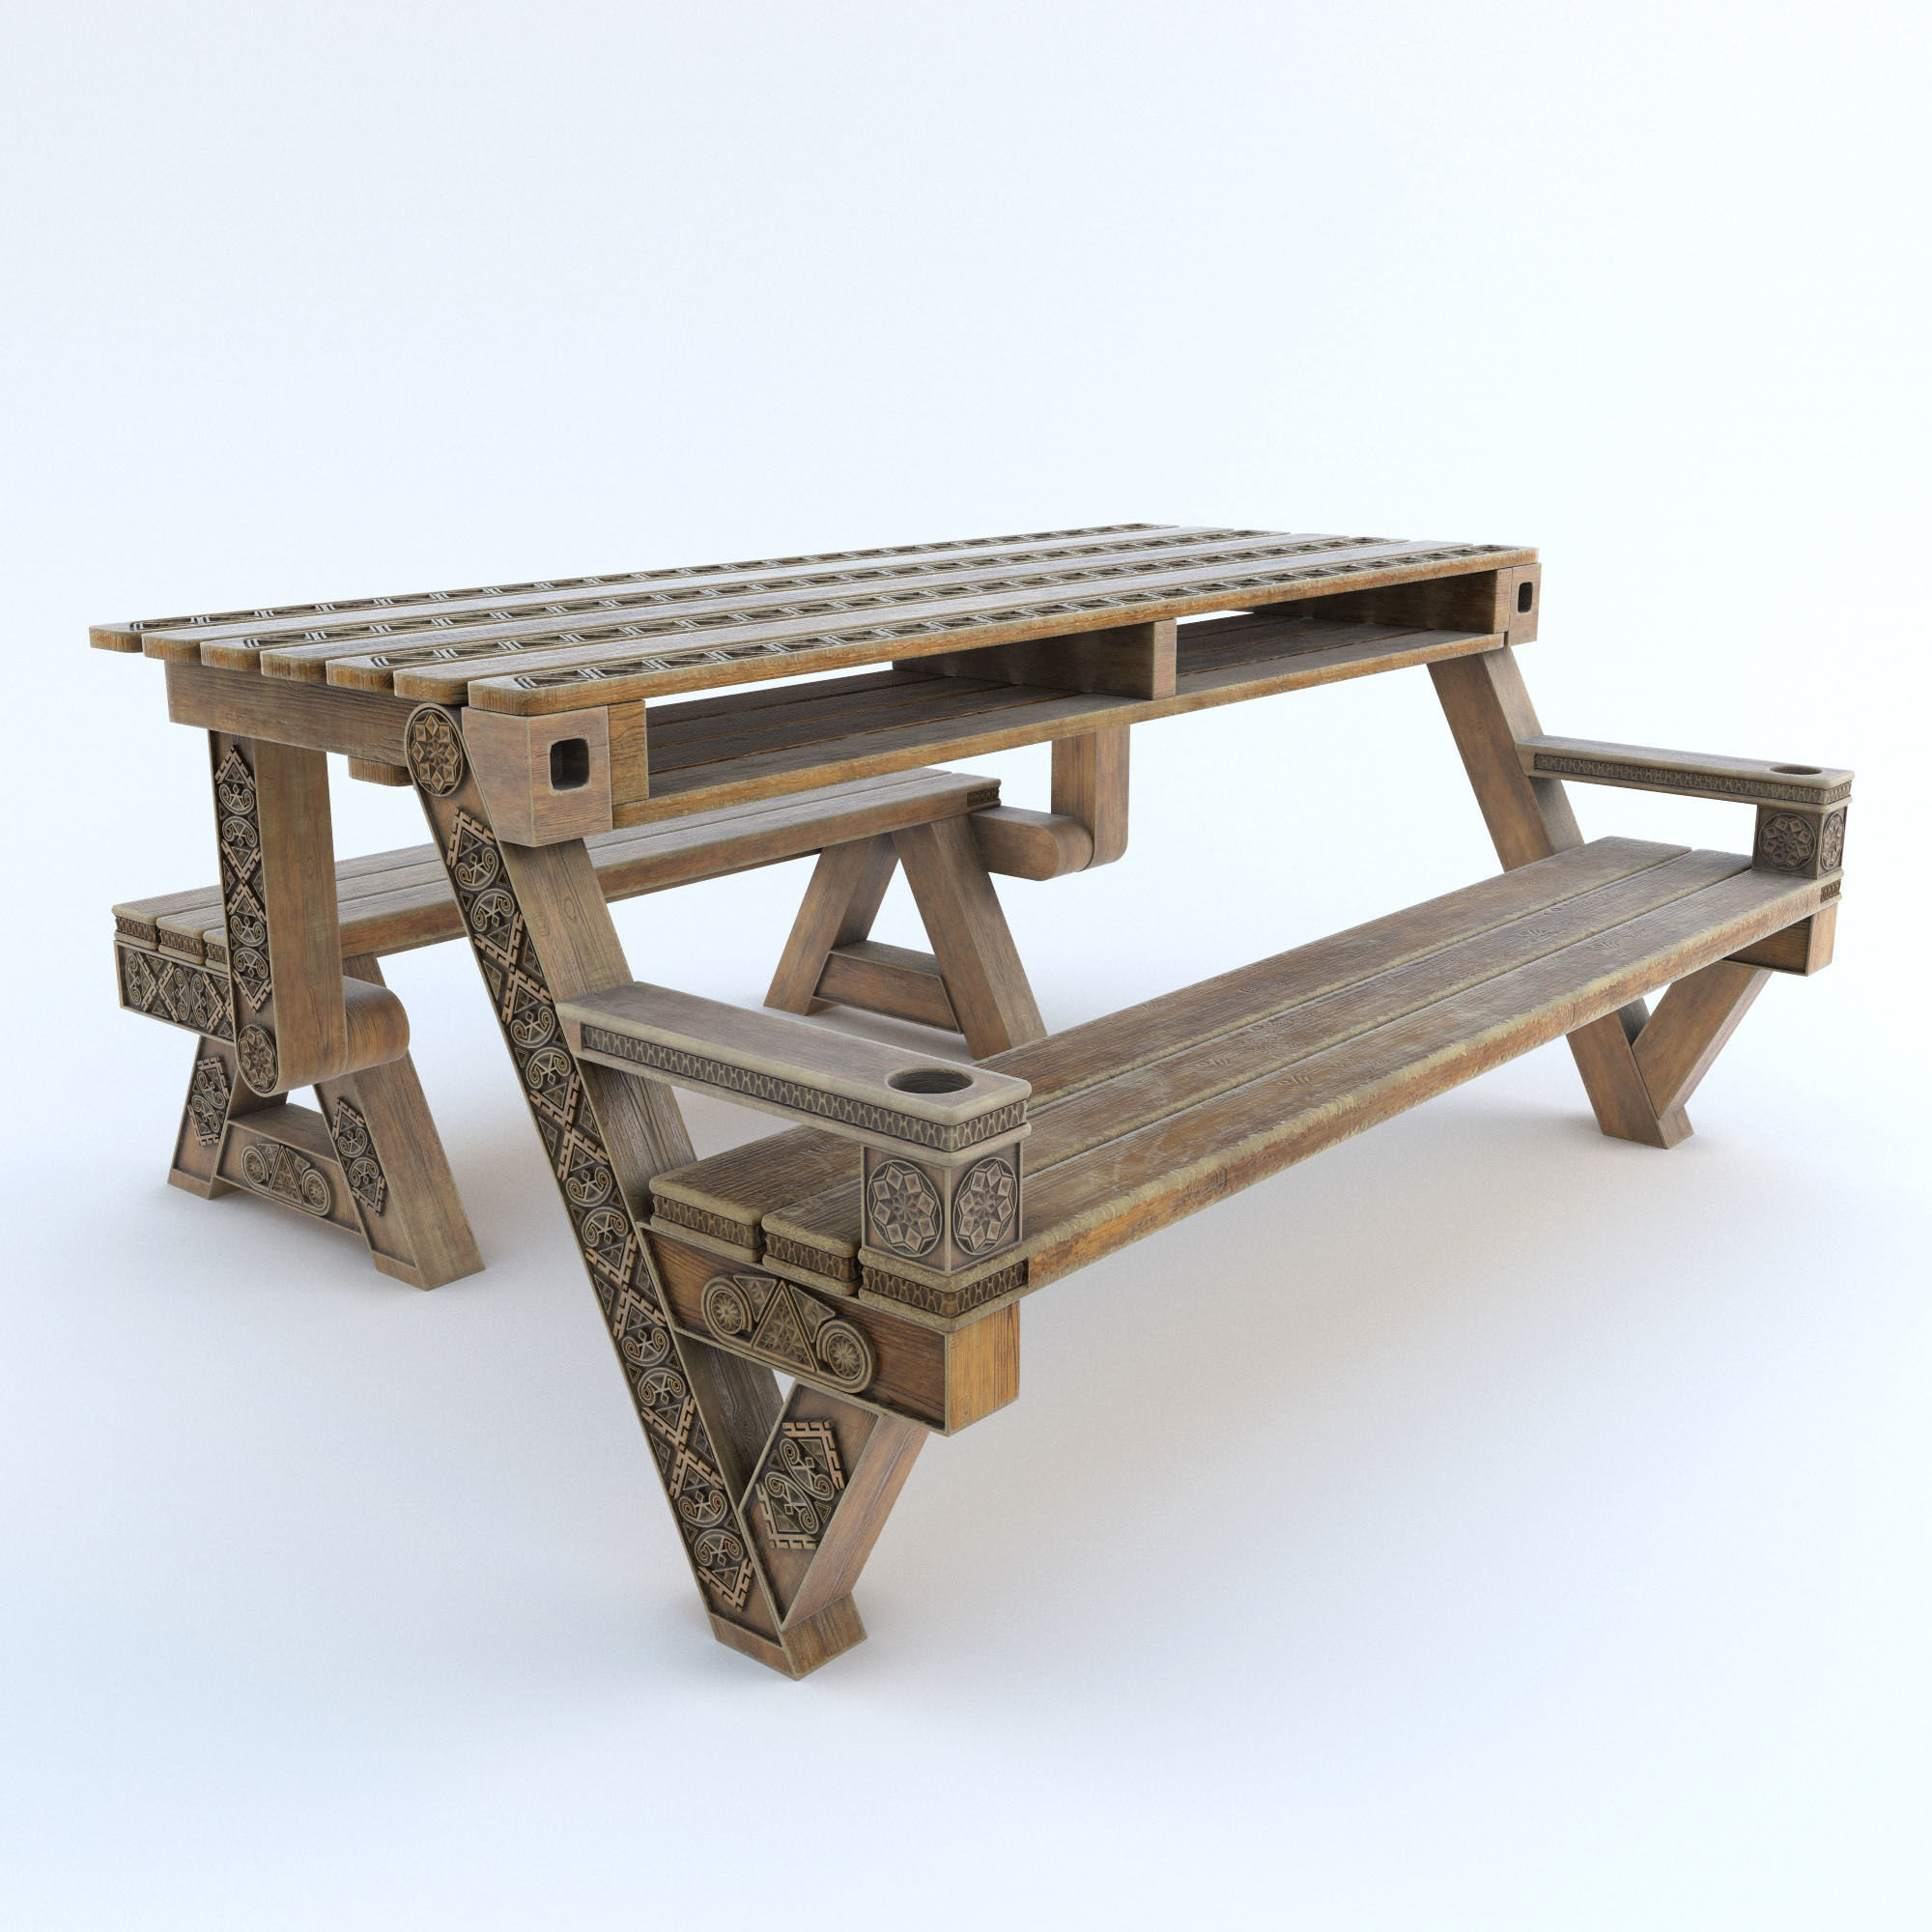 Transformer bench table with carving